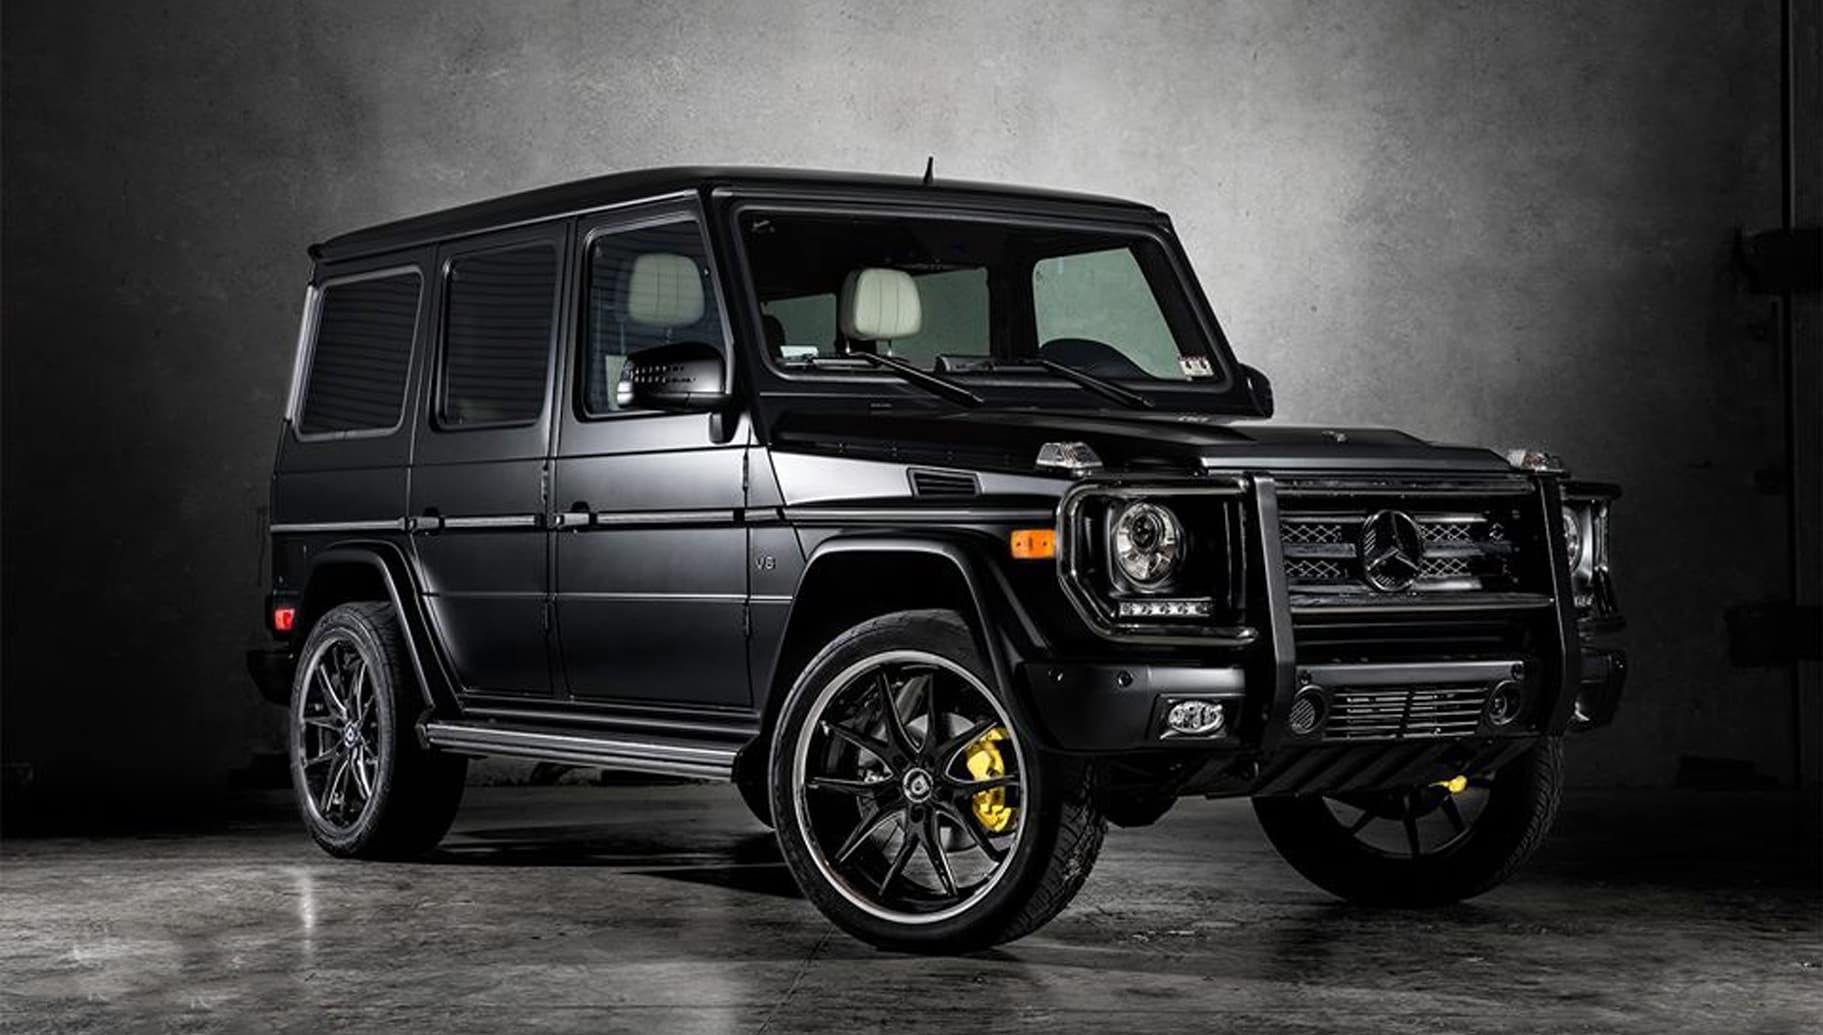 Mercedes G-Wagon with a BGS finish on the R-Twelve.